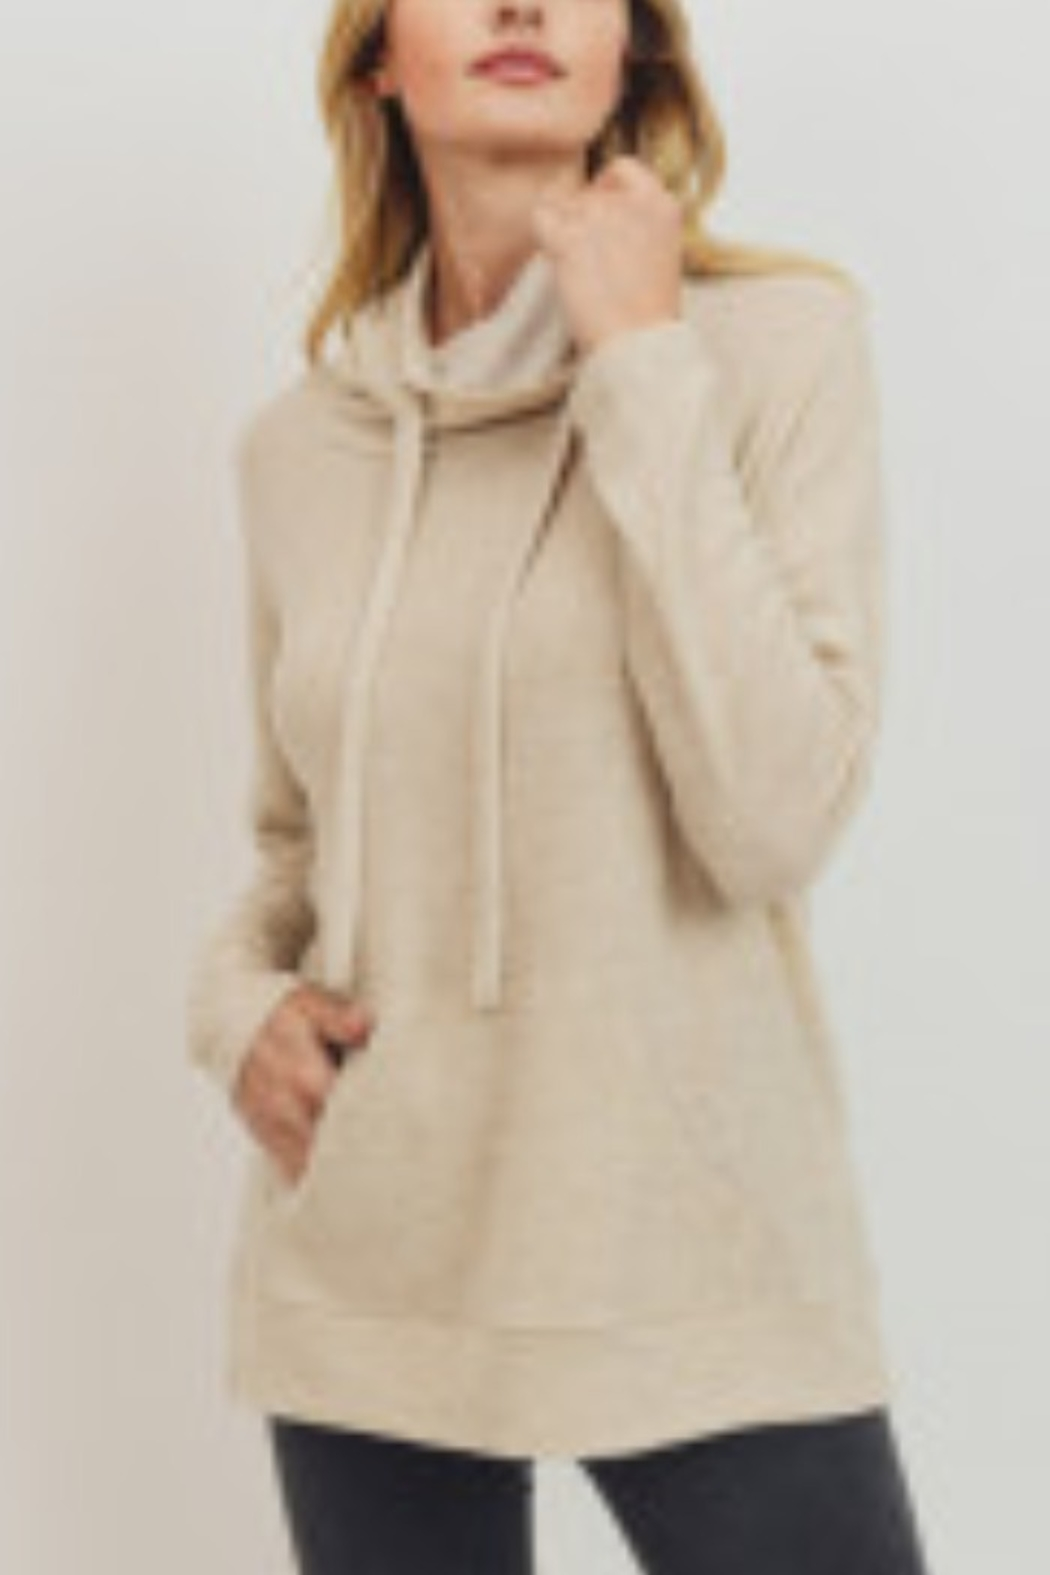 Lyn -Maree's Brushed Knit Kangaroo Pocket Turtleneck Top - Main Image